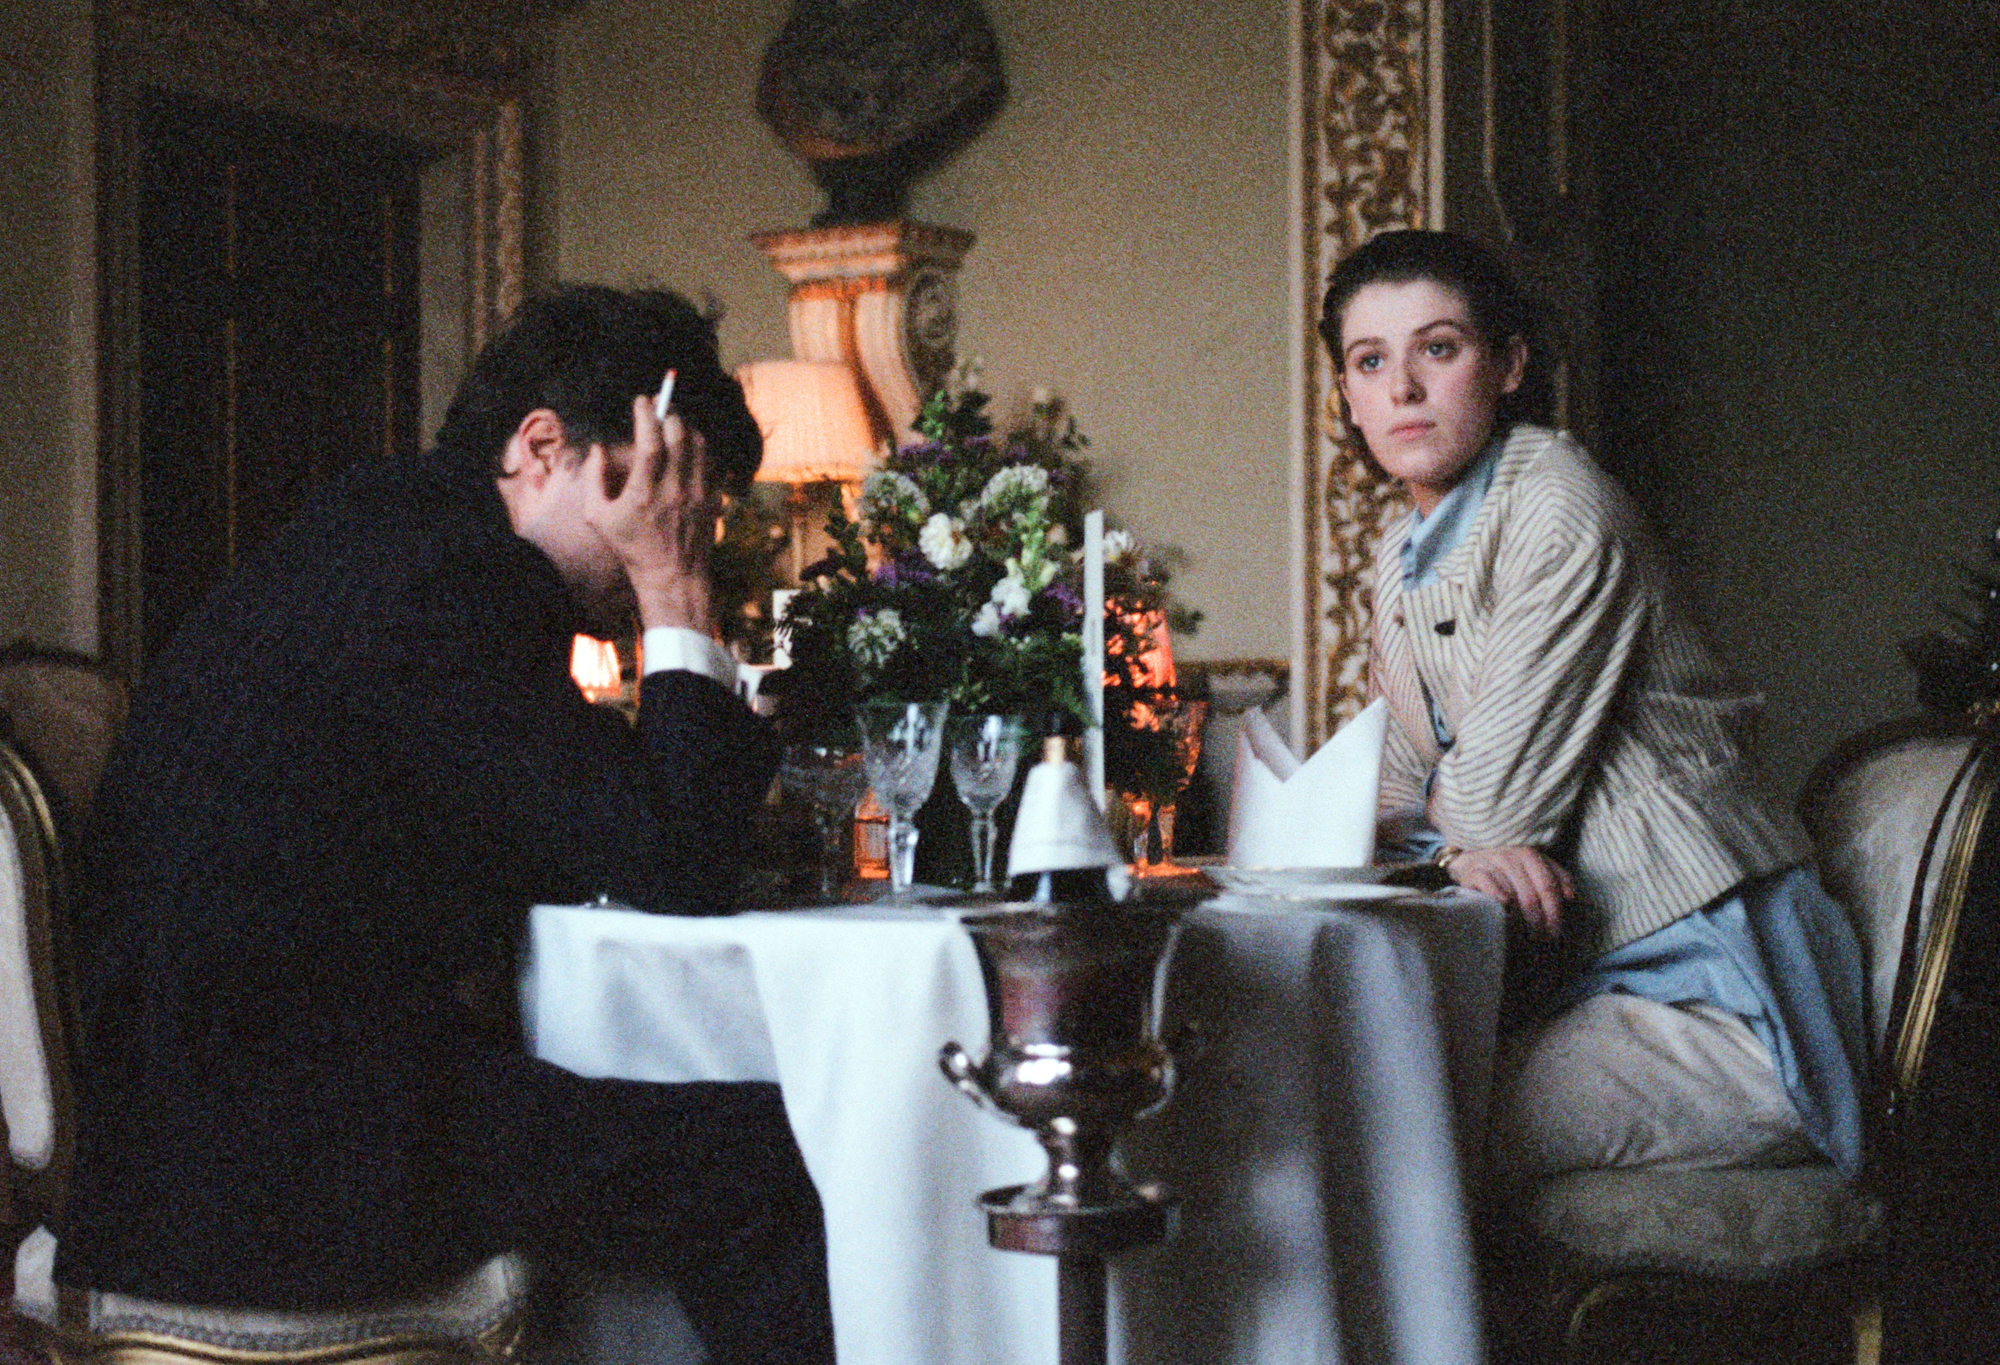 Even as memory, the relationship between Julie (Honor Swinton Byrne) and Anthony (Tom Burke) is fraught.